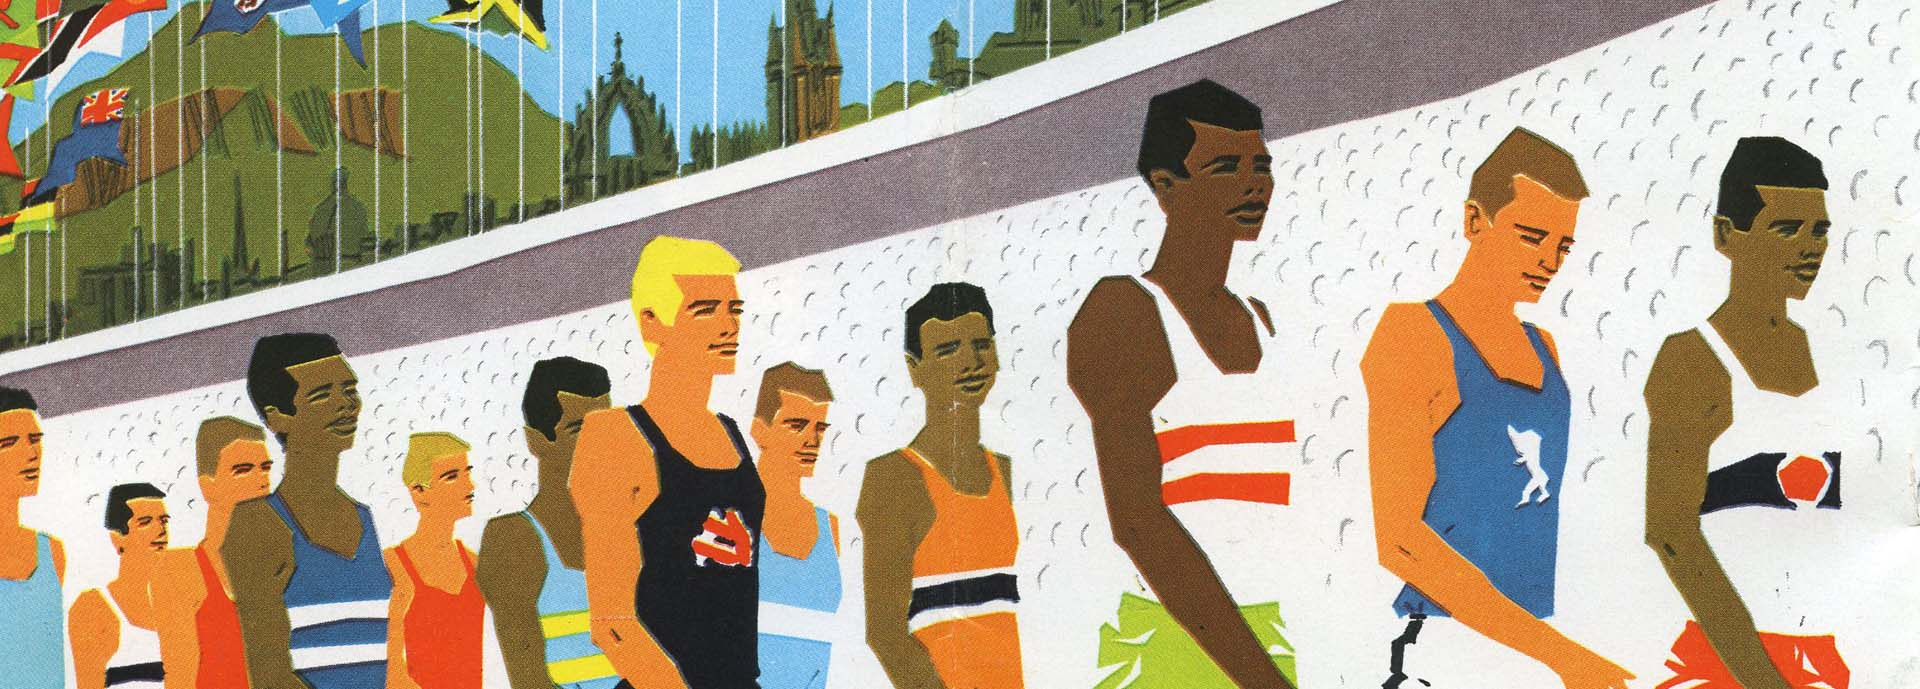 Commonwealth games poster